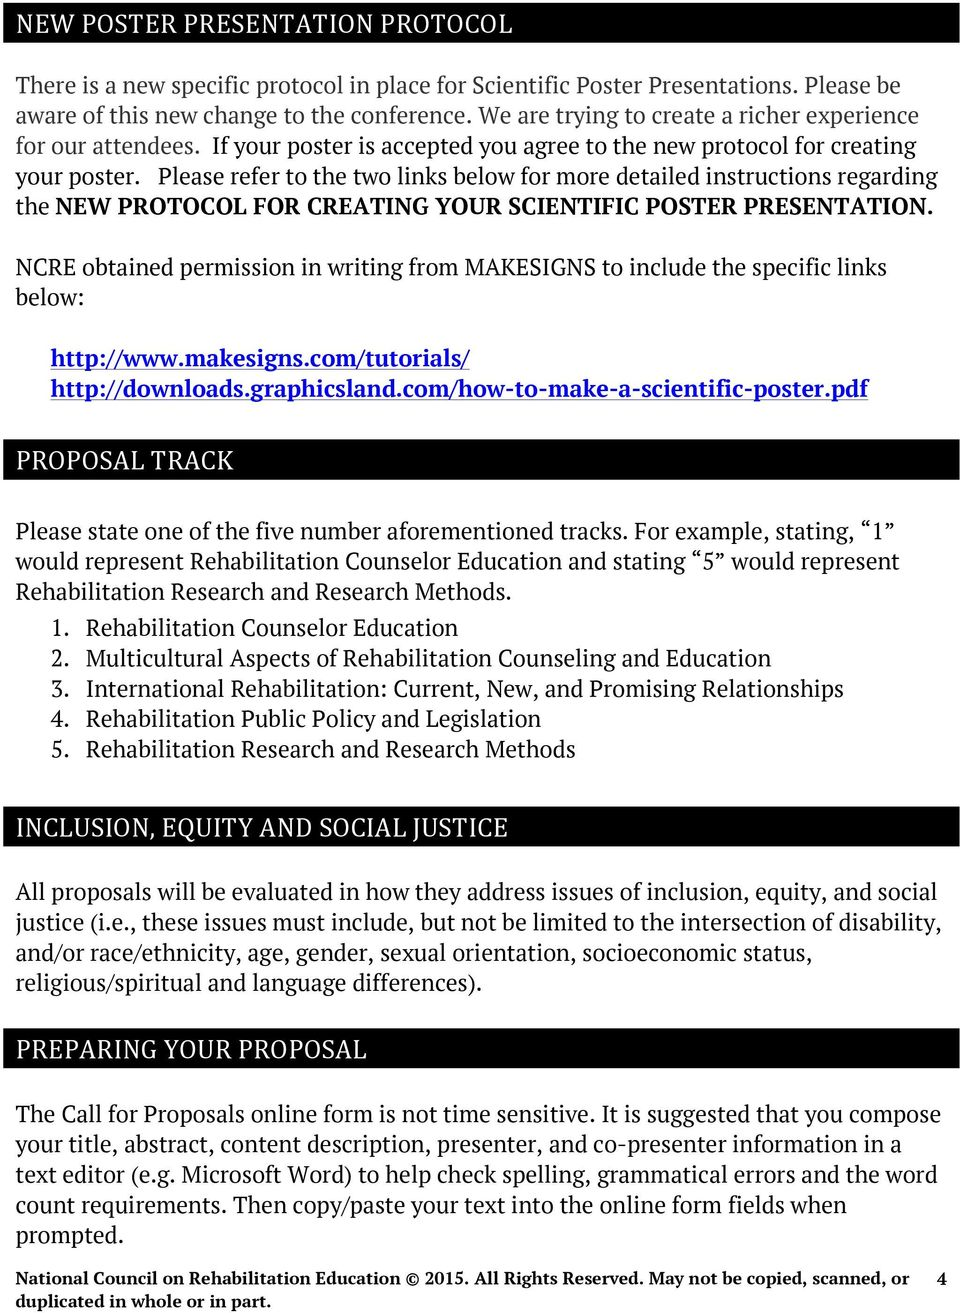 Please refer to the two links below for more detailed instructions regarding the NEW PROTOCOL FOR CREATING YOUR SCIENTIFIC POSTER PRESENTATION.